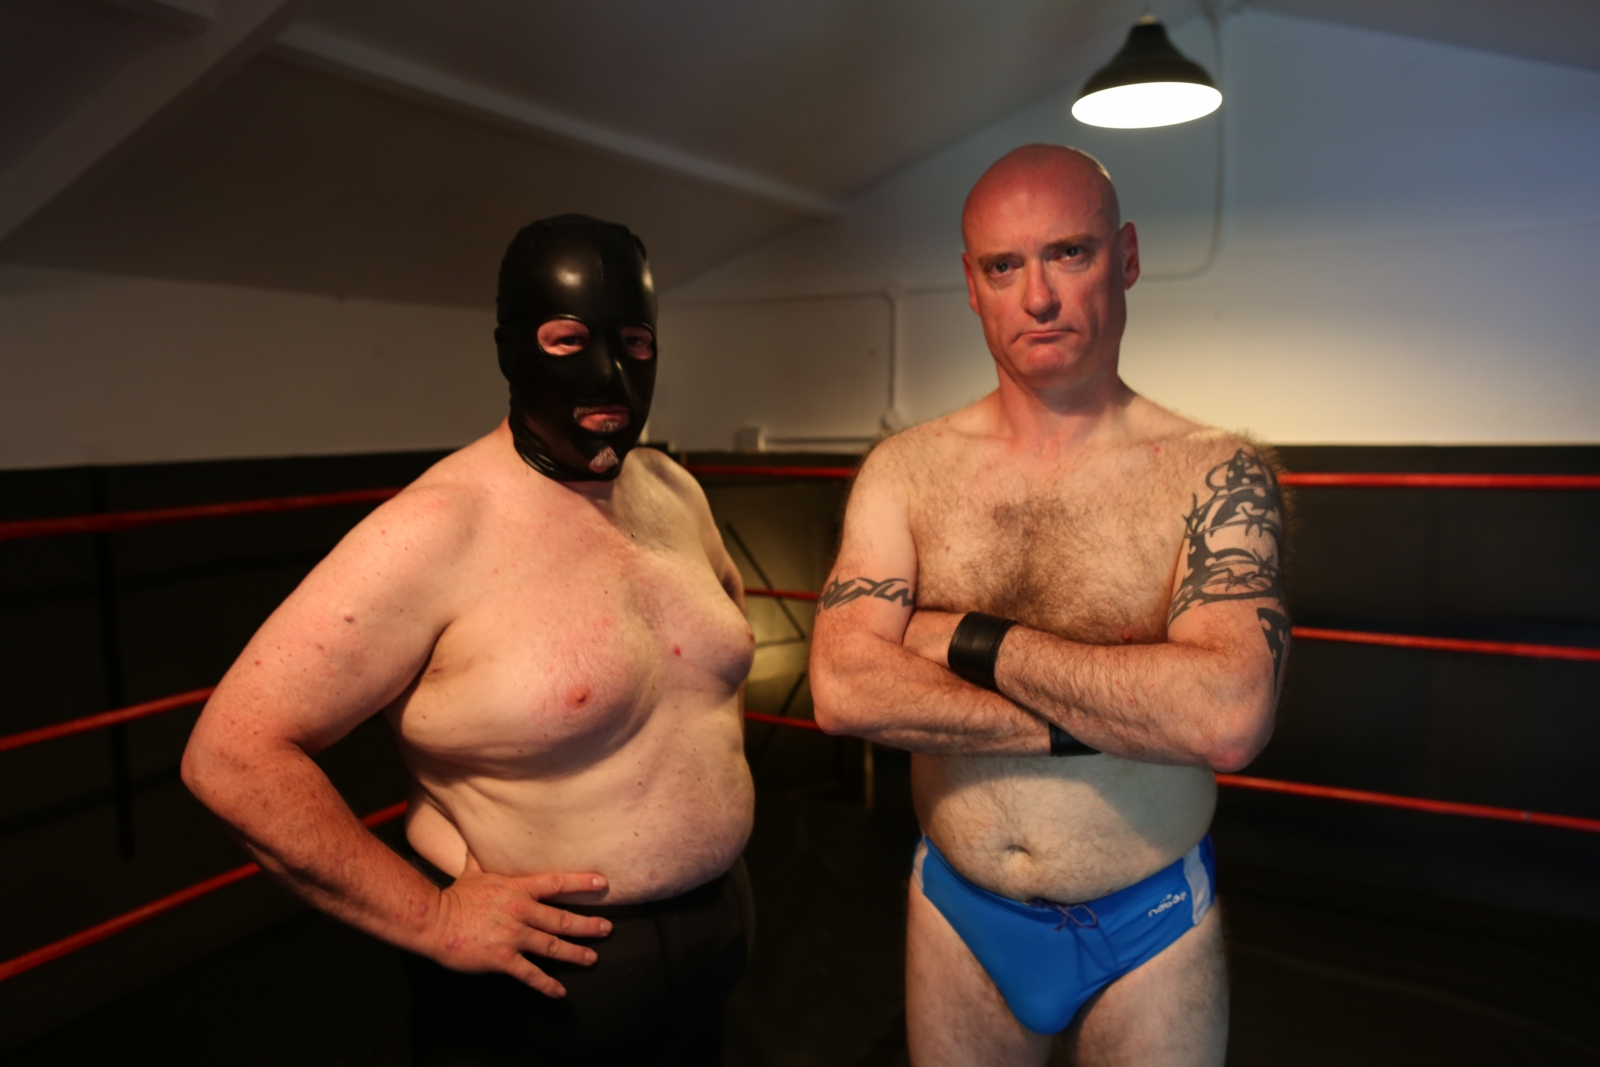 Fetish wrestlers in their fighting gear